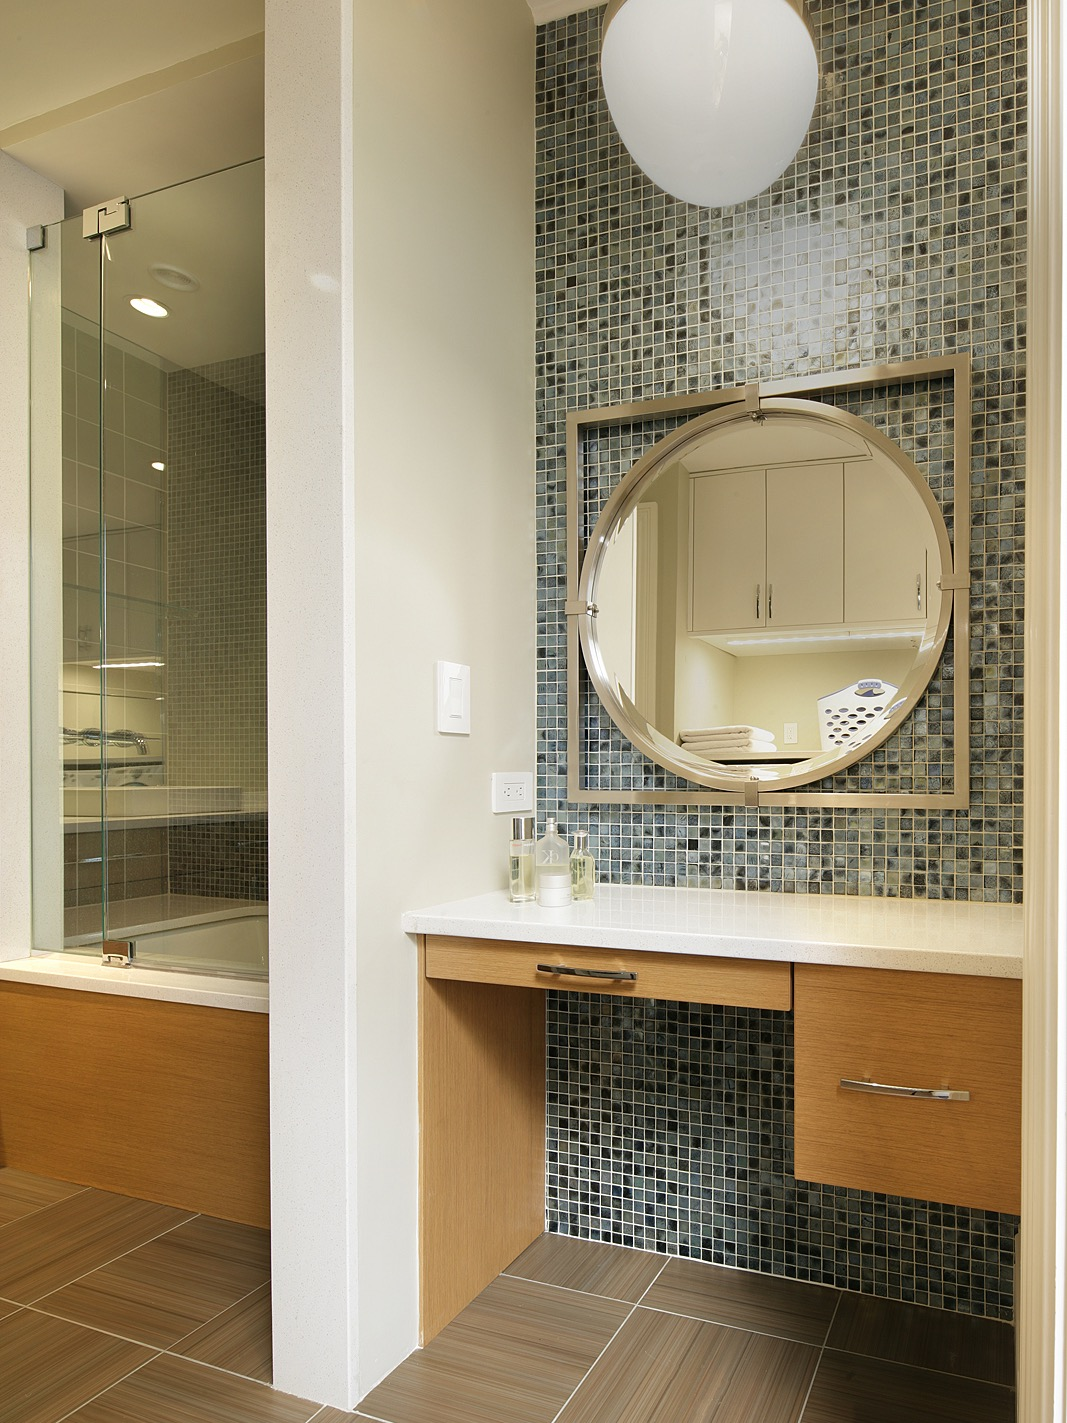 Bathroom Vanity And Mosaic Glass Tile Wall (View 4 of 21)